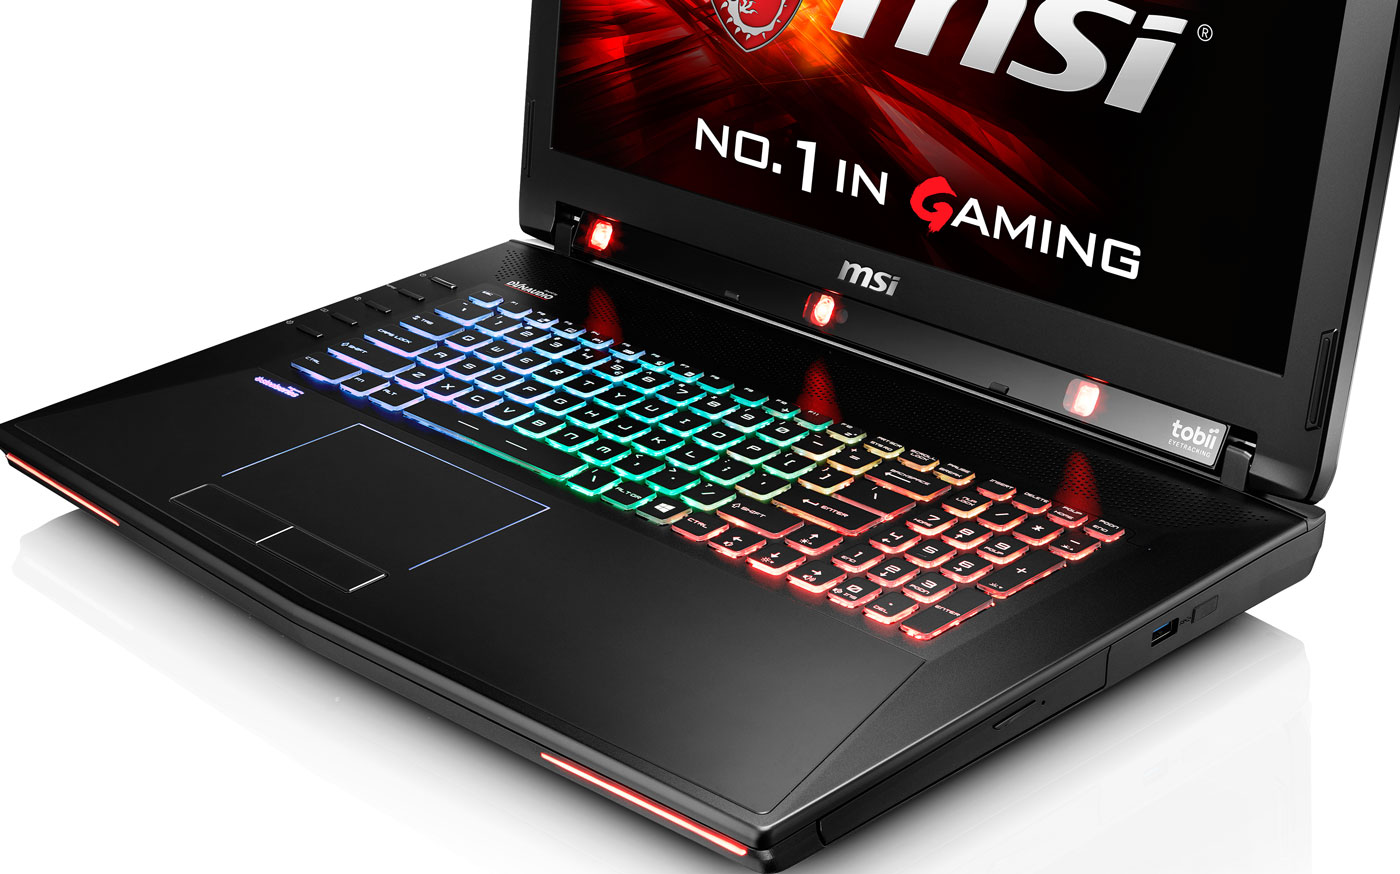 You can now buy MSI's eye-tracking laptop